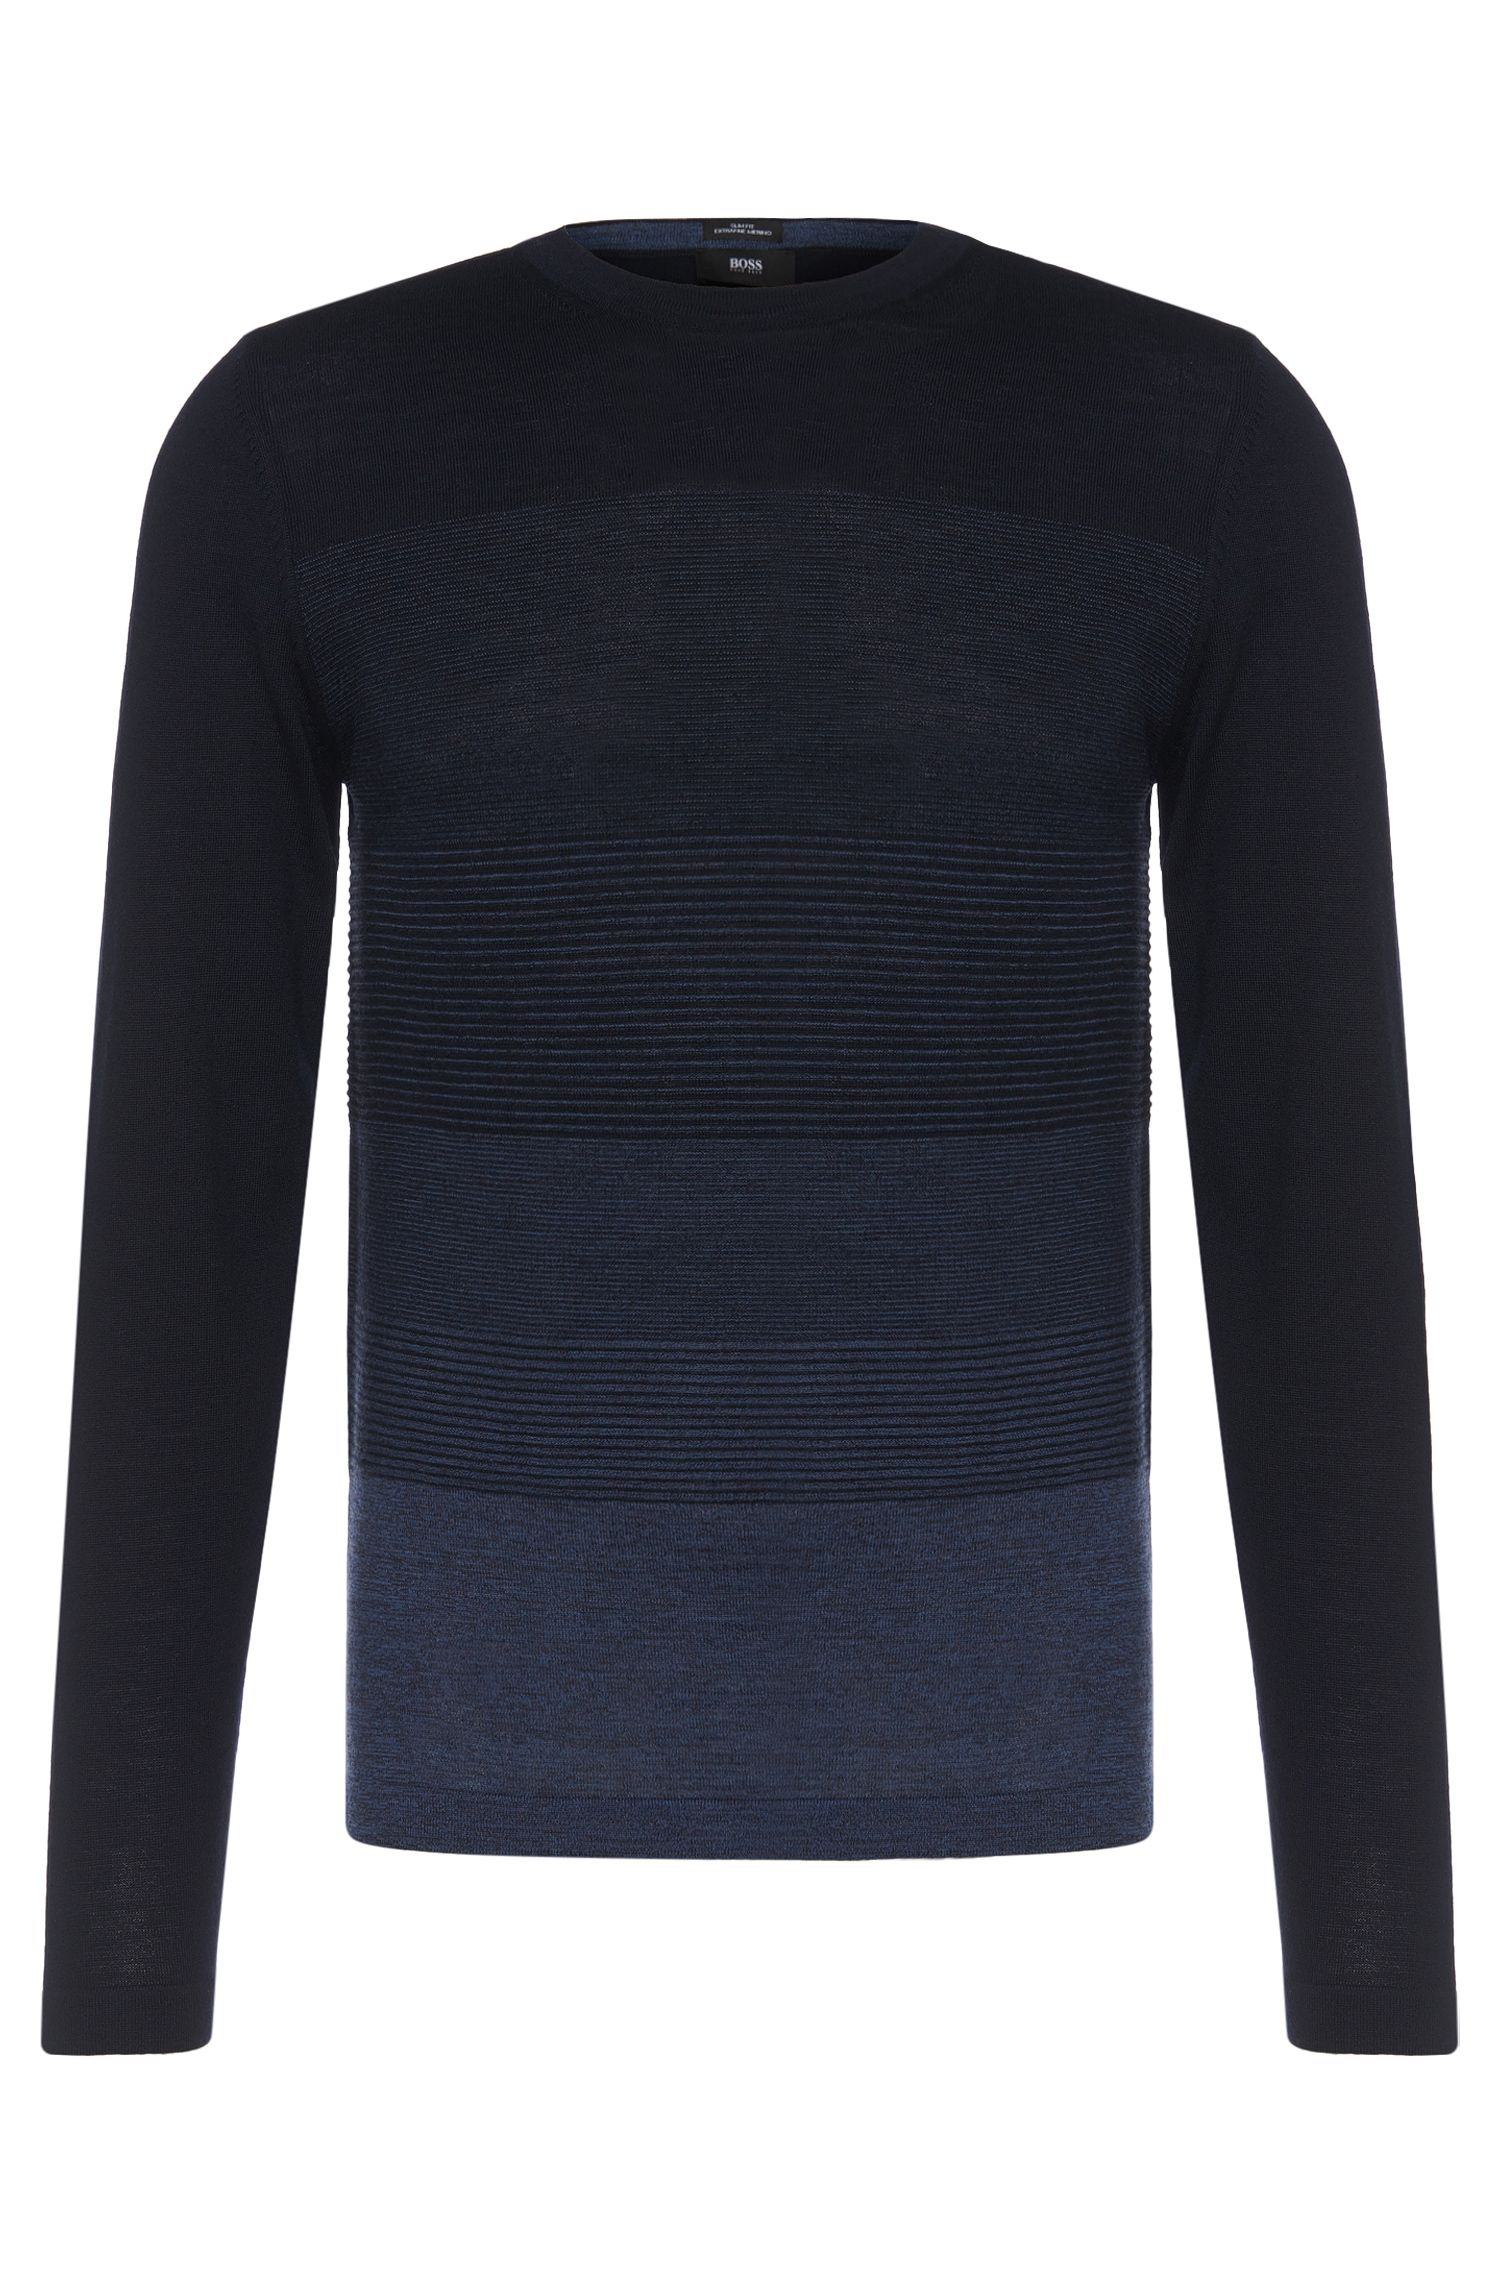 'Balasco' | Virgin Wool Ombre-Stripe Sweater